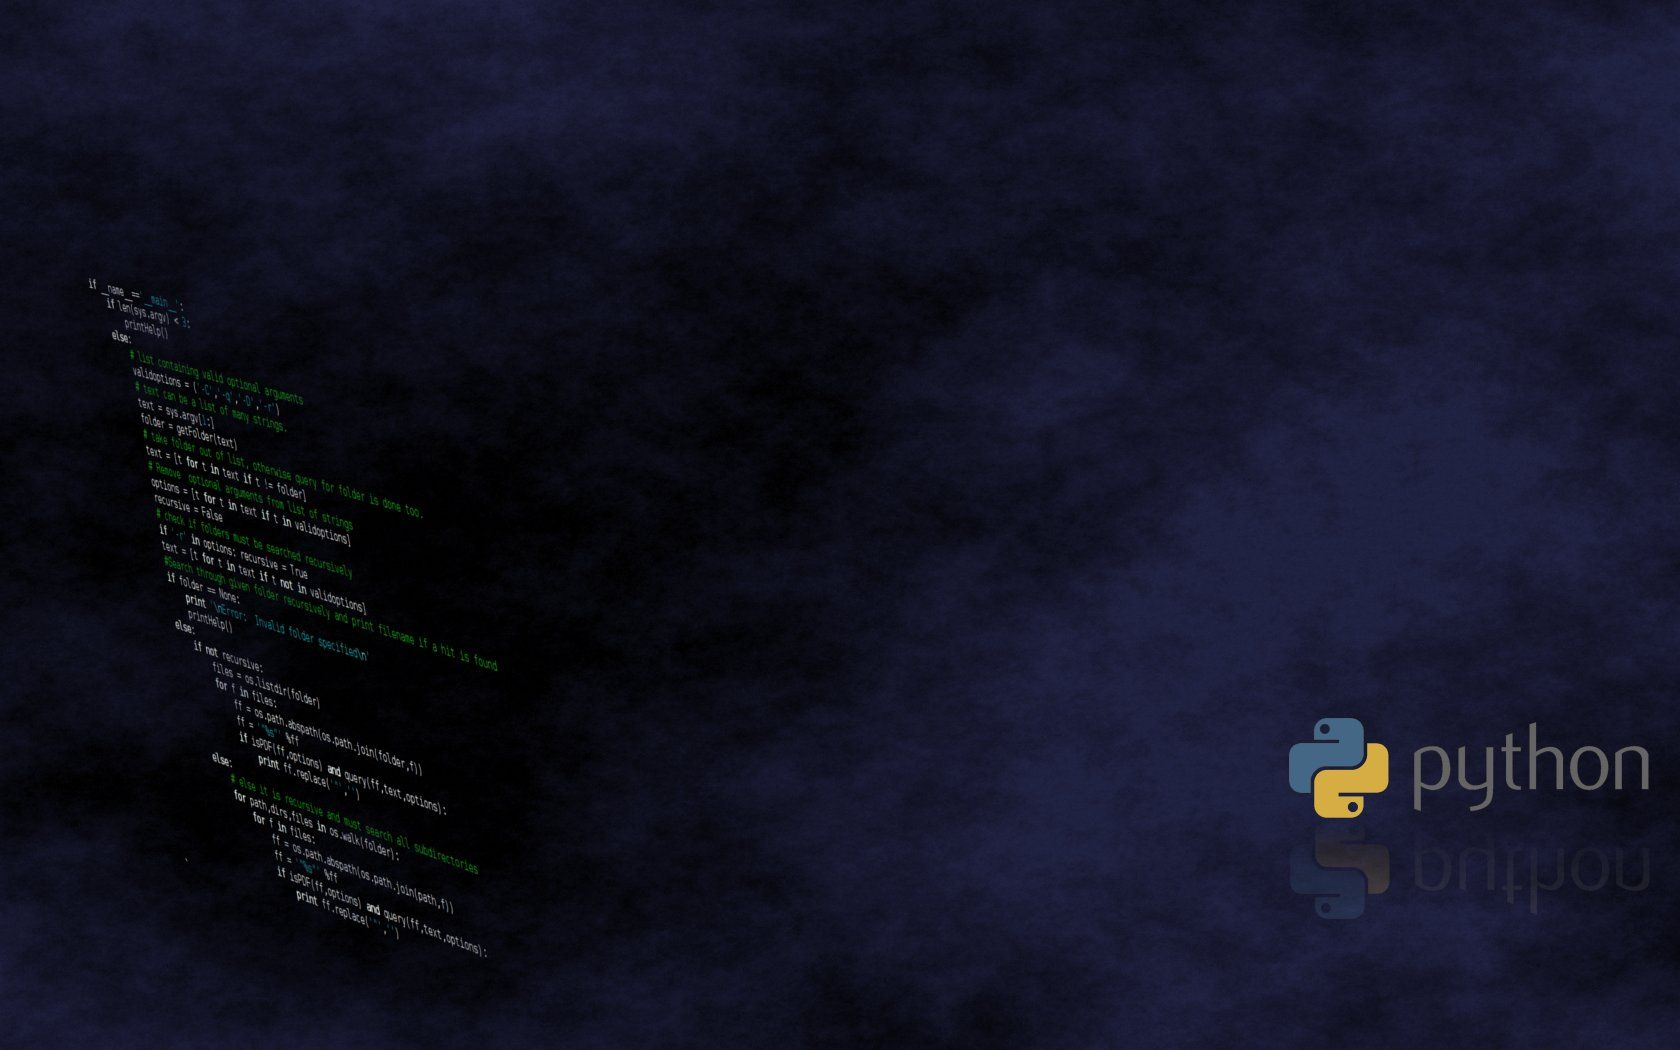 Programming images Python HD wallpaper and background photos